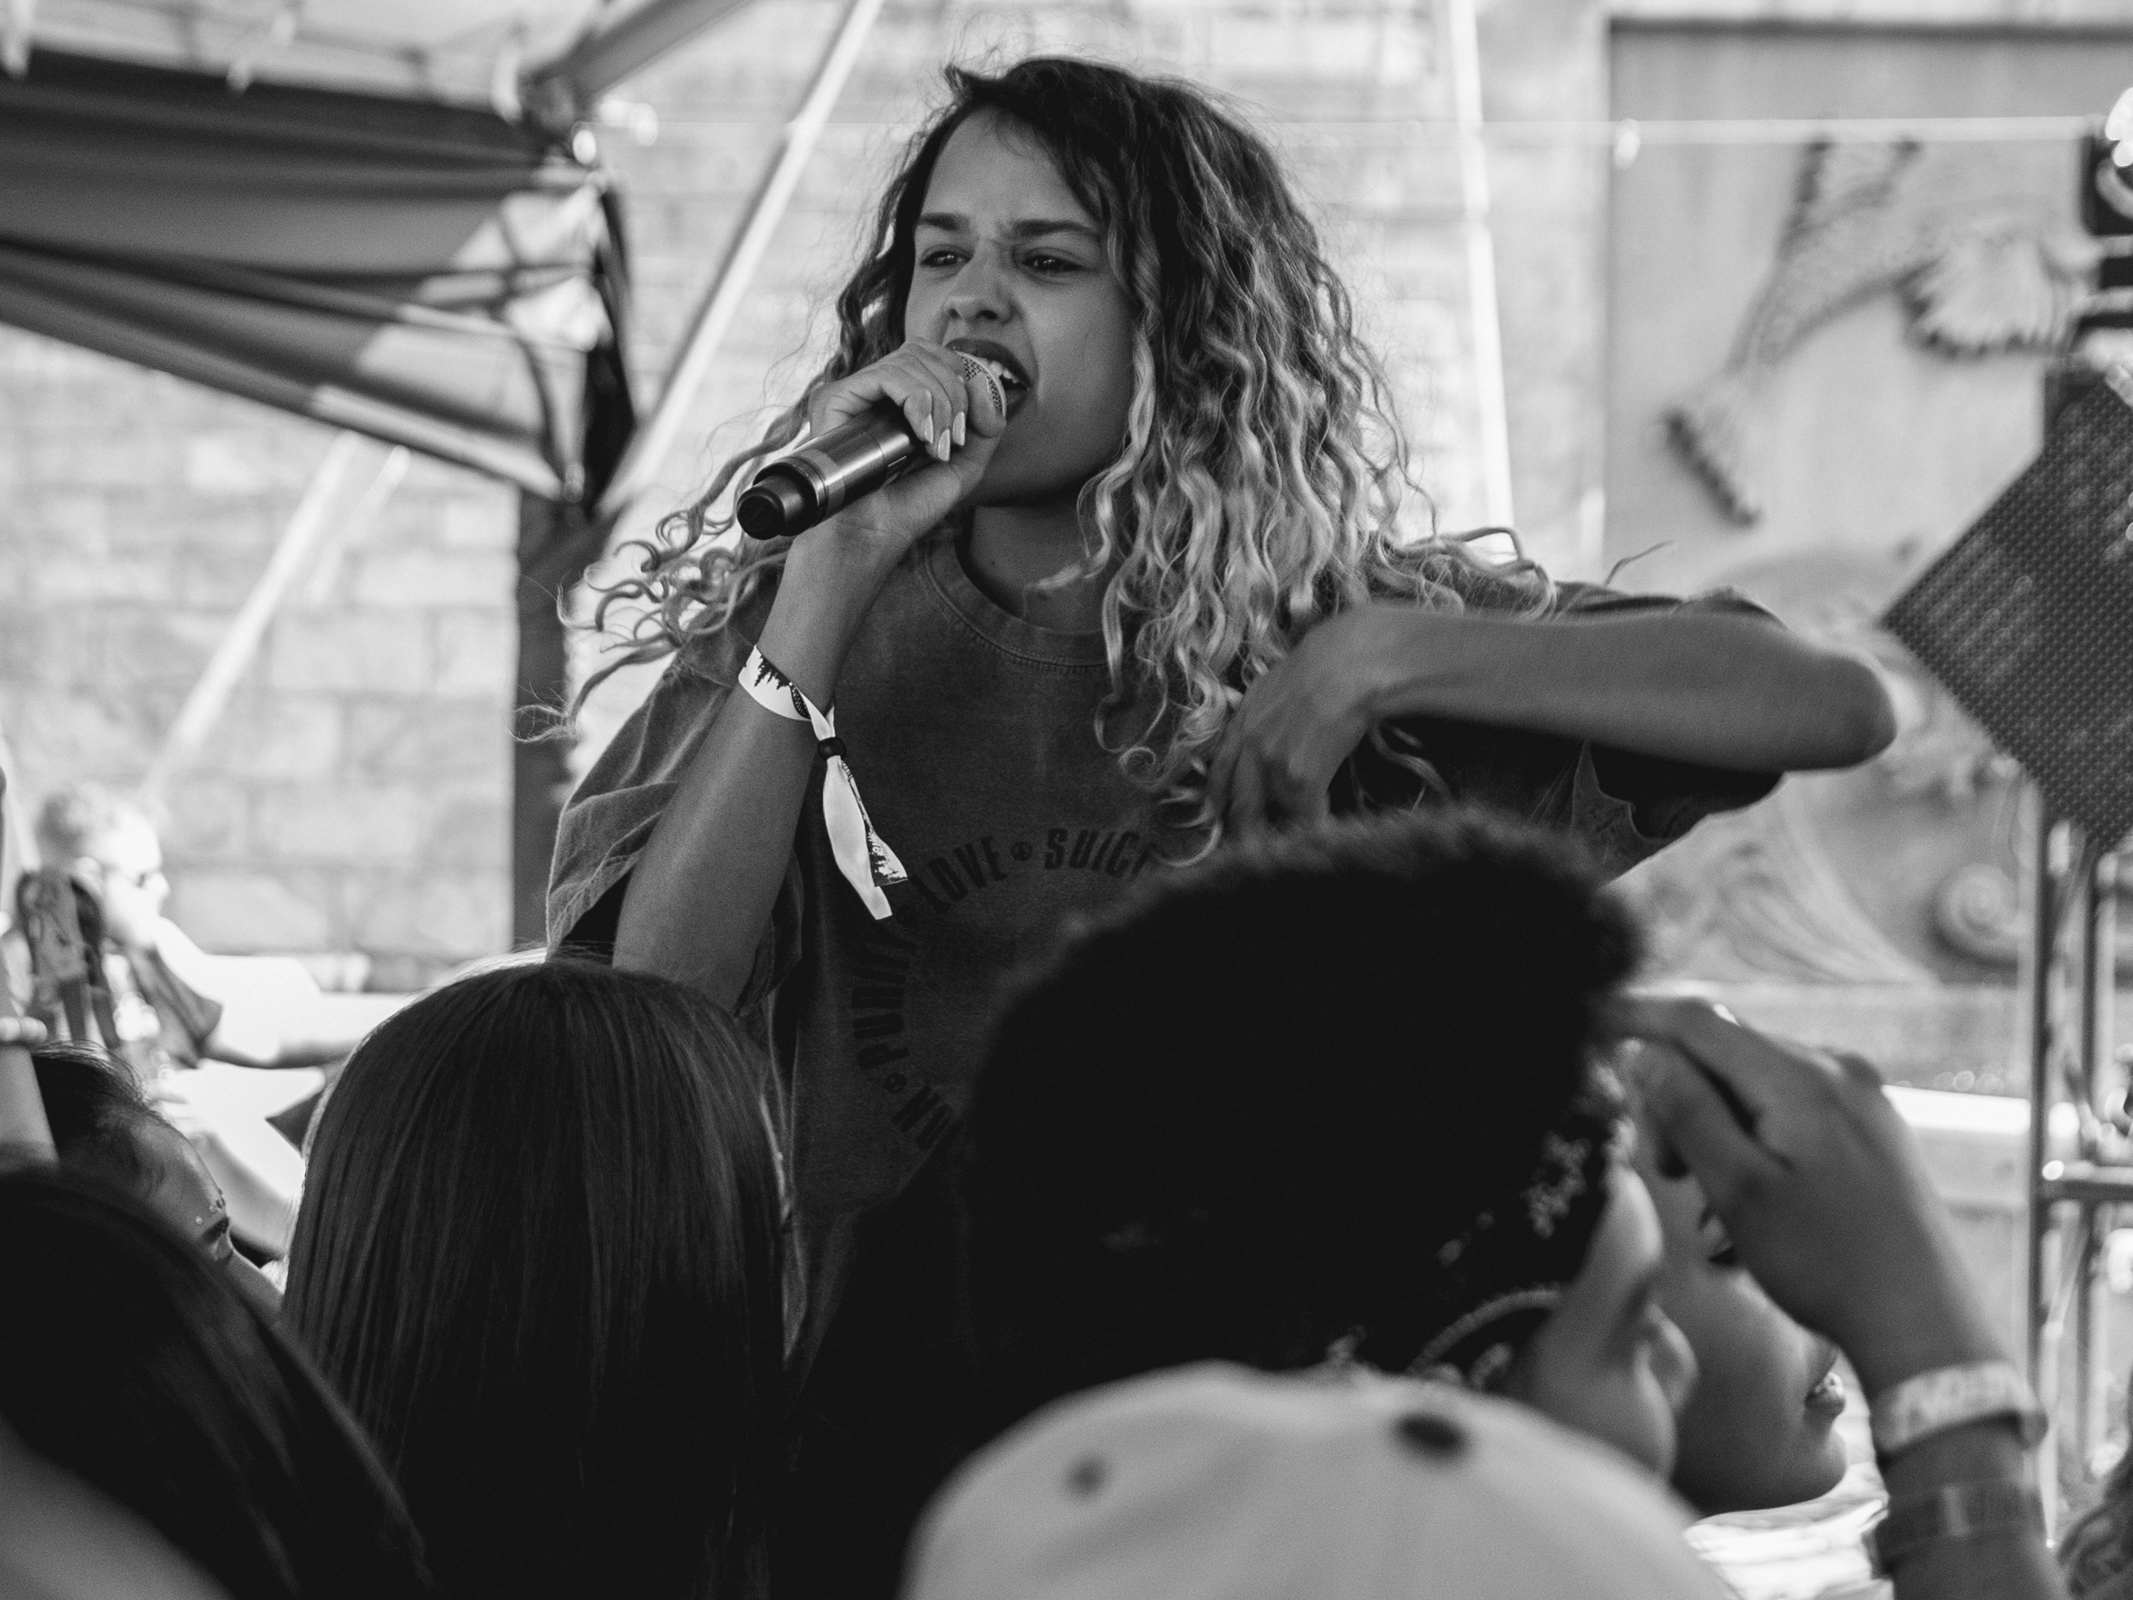 Tommy Genesis @ FVDED. 2016.